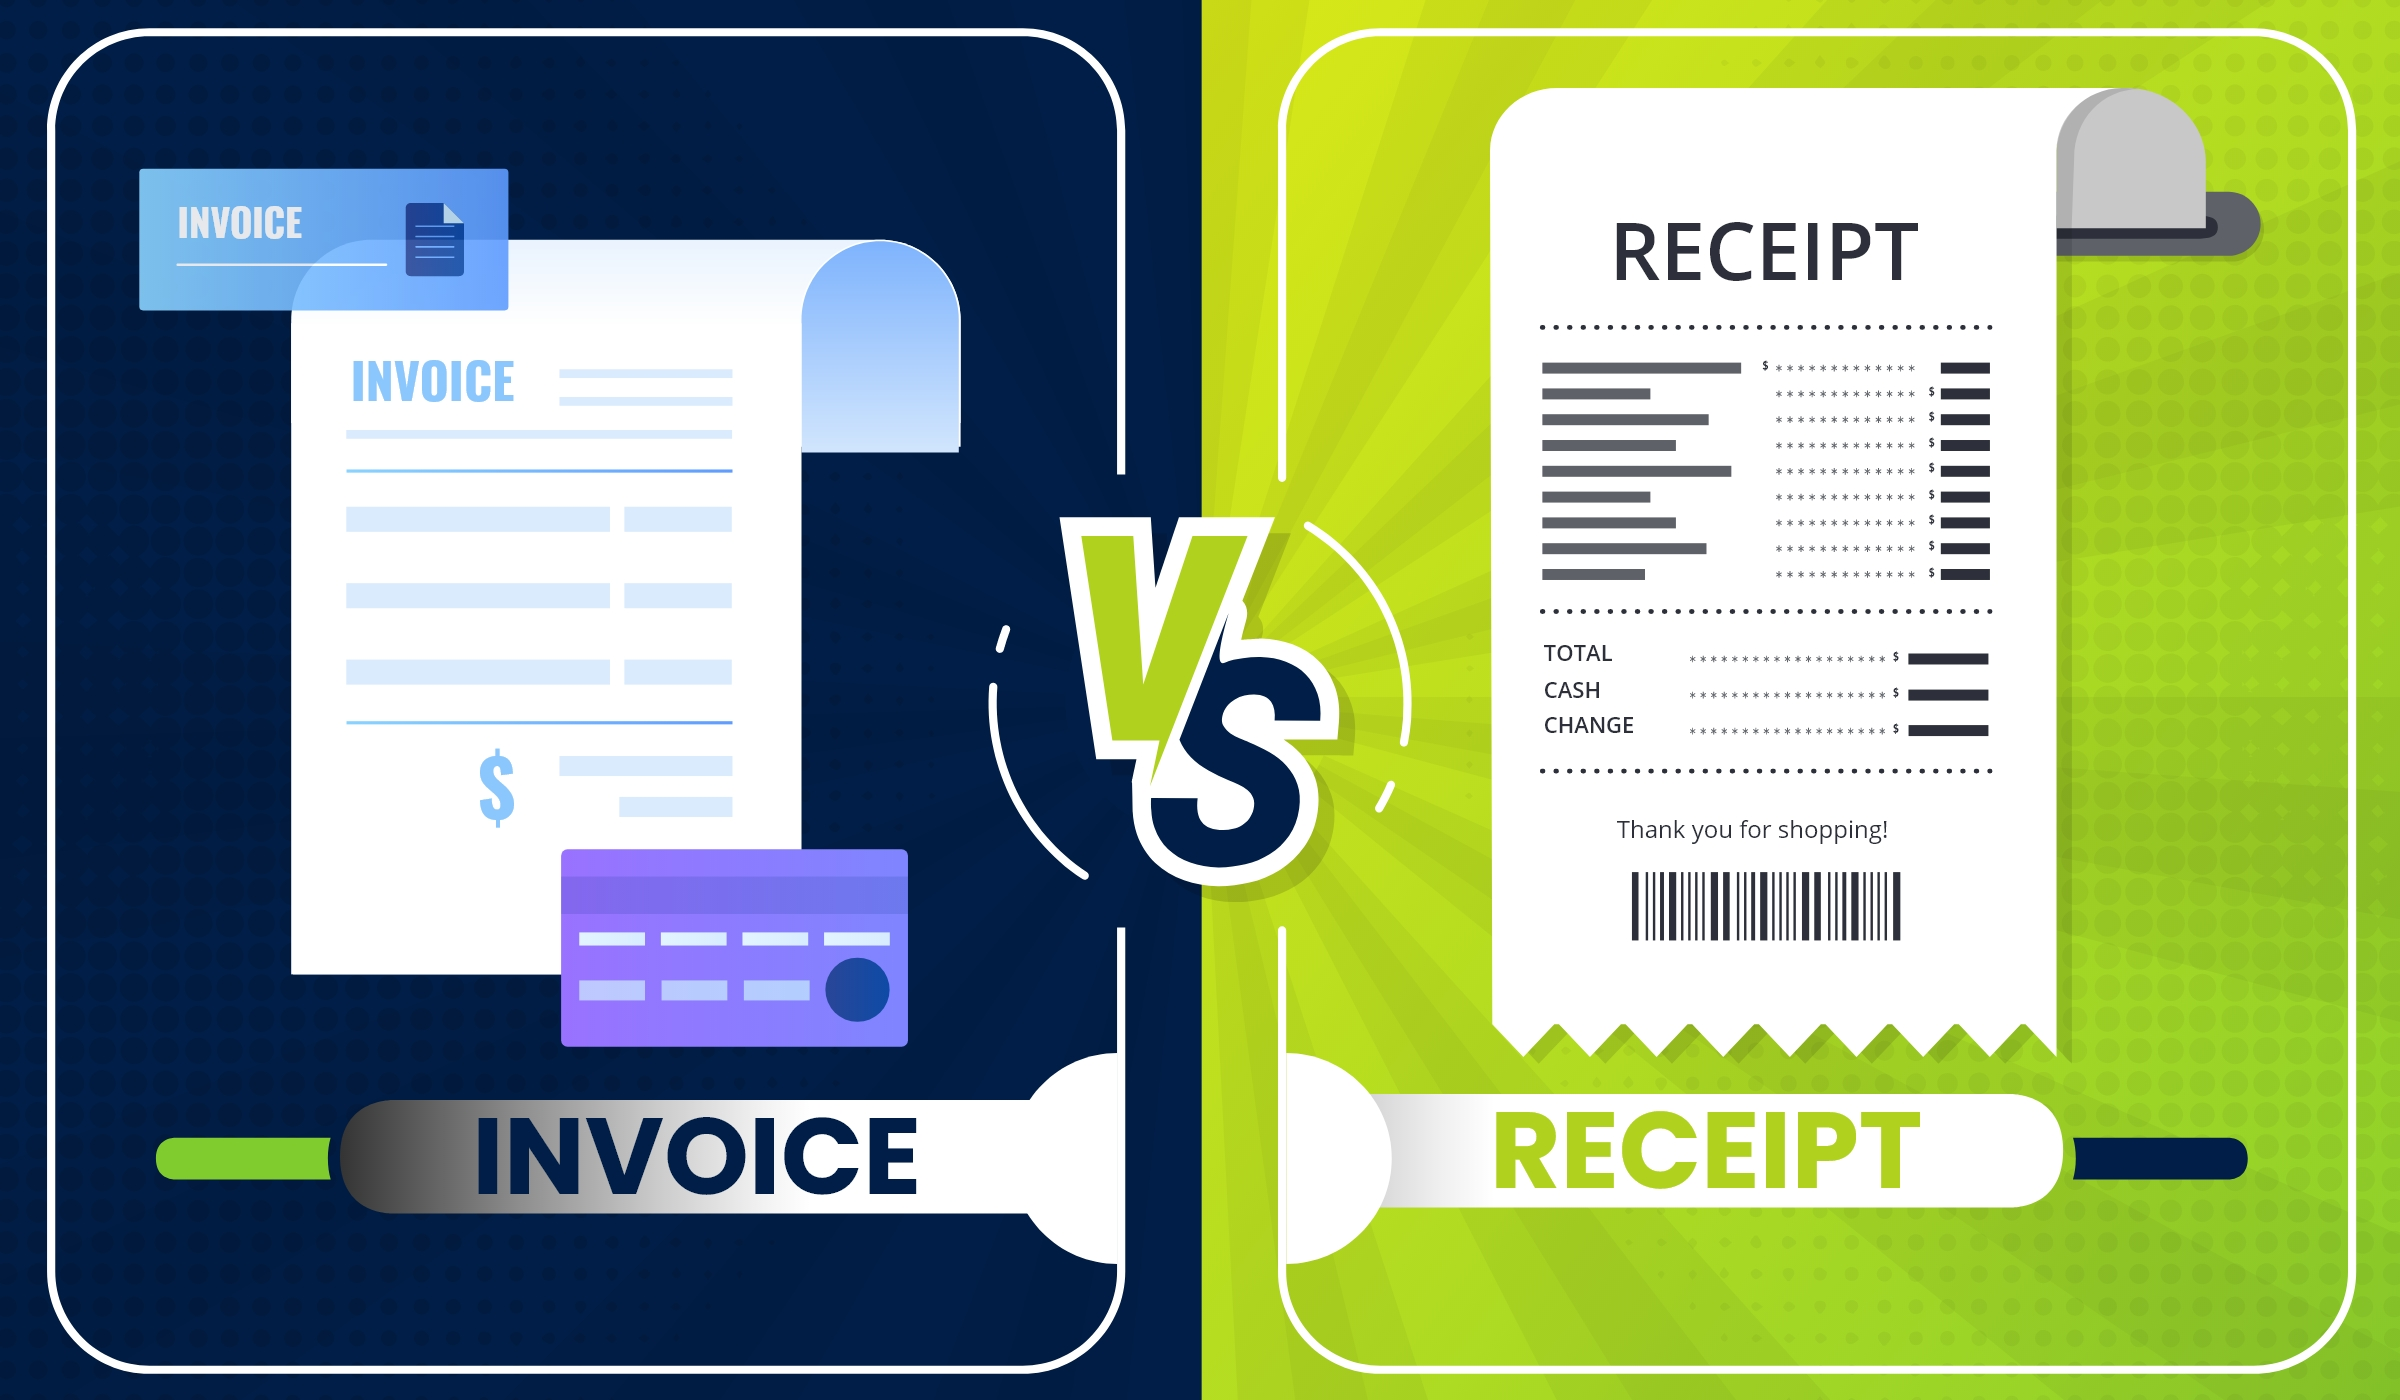 What is the Difference Between a Receipt and an Invoice